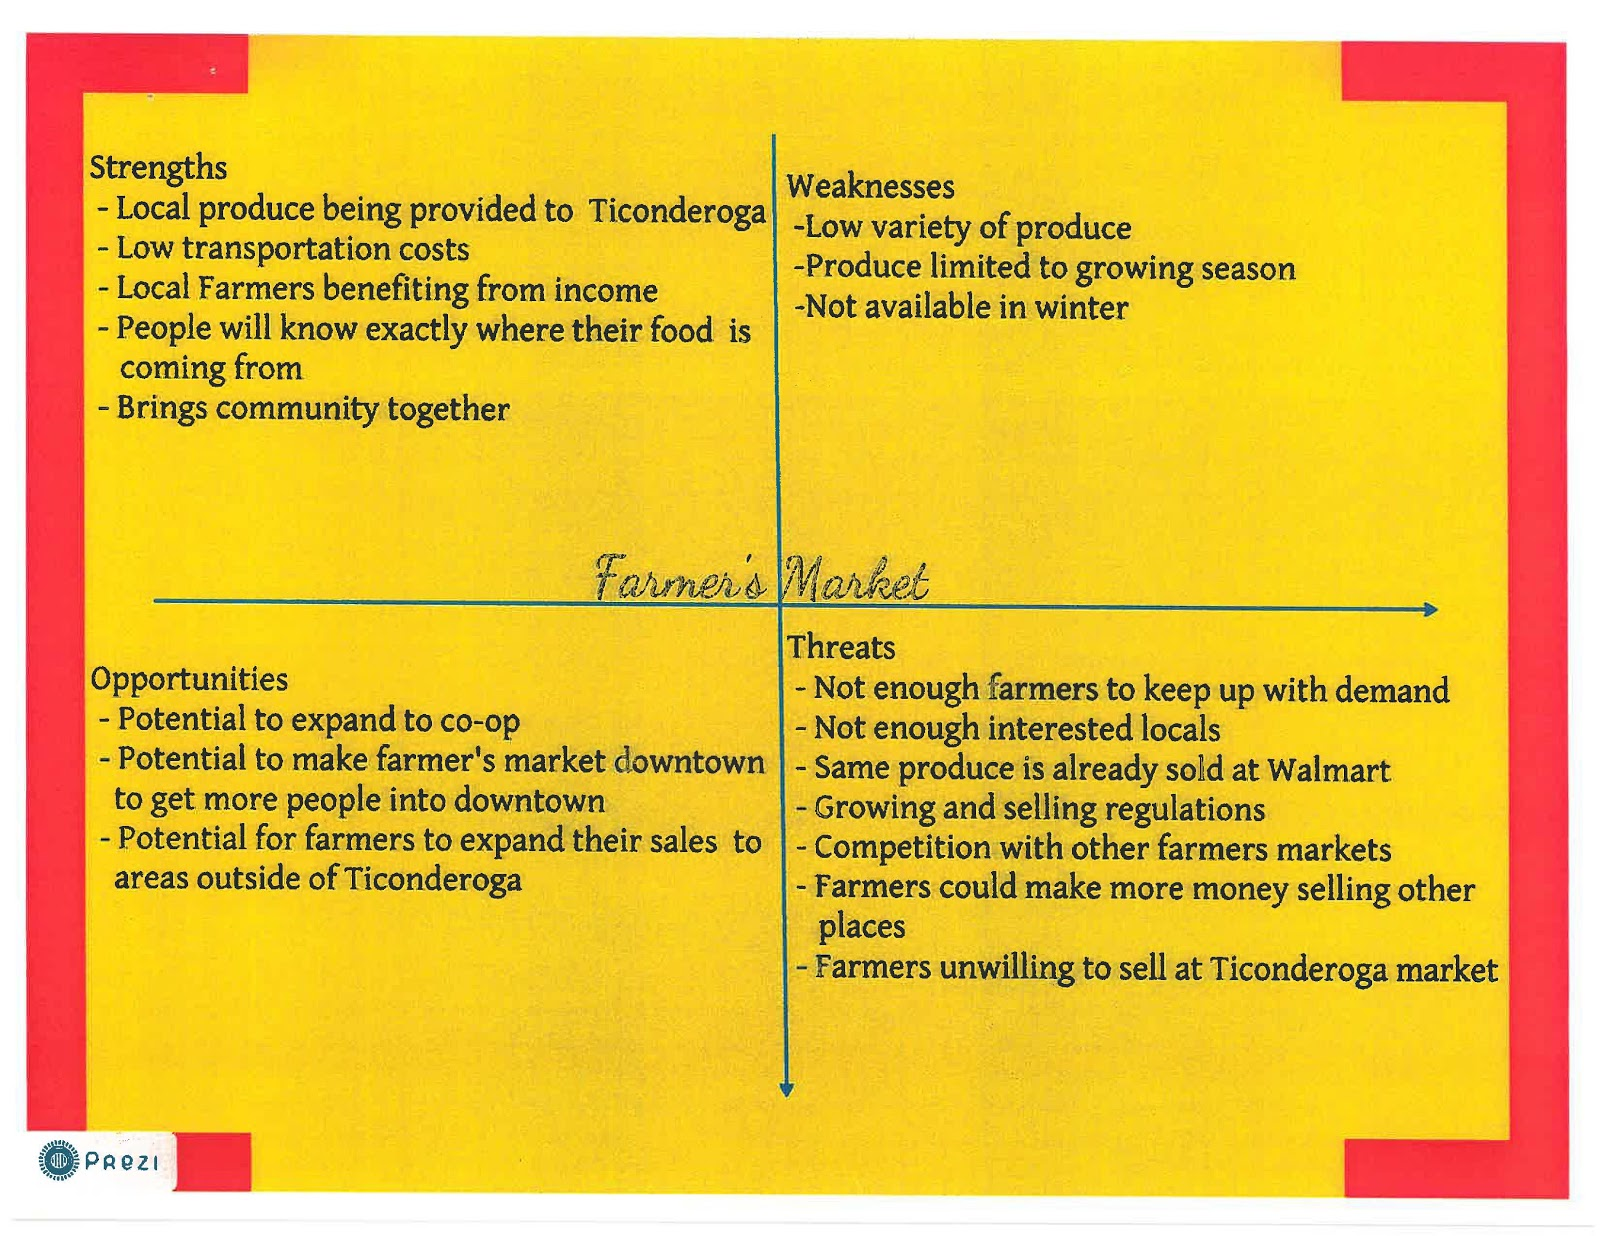 swot analysis for bp This article performs a swot analysis of ikea by focusing on the key drivers of success for the company the key themes in this article are that ikea's business model of cost leadership has held it in good stead so far and to continue, the company needs to innovate and find newer strategic imperatives for itself.